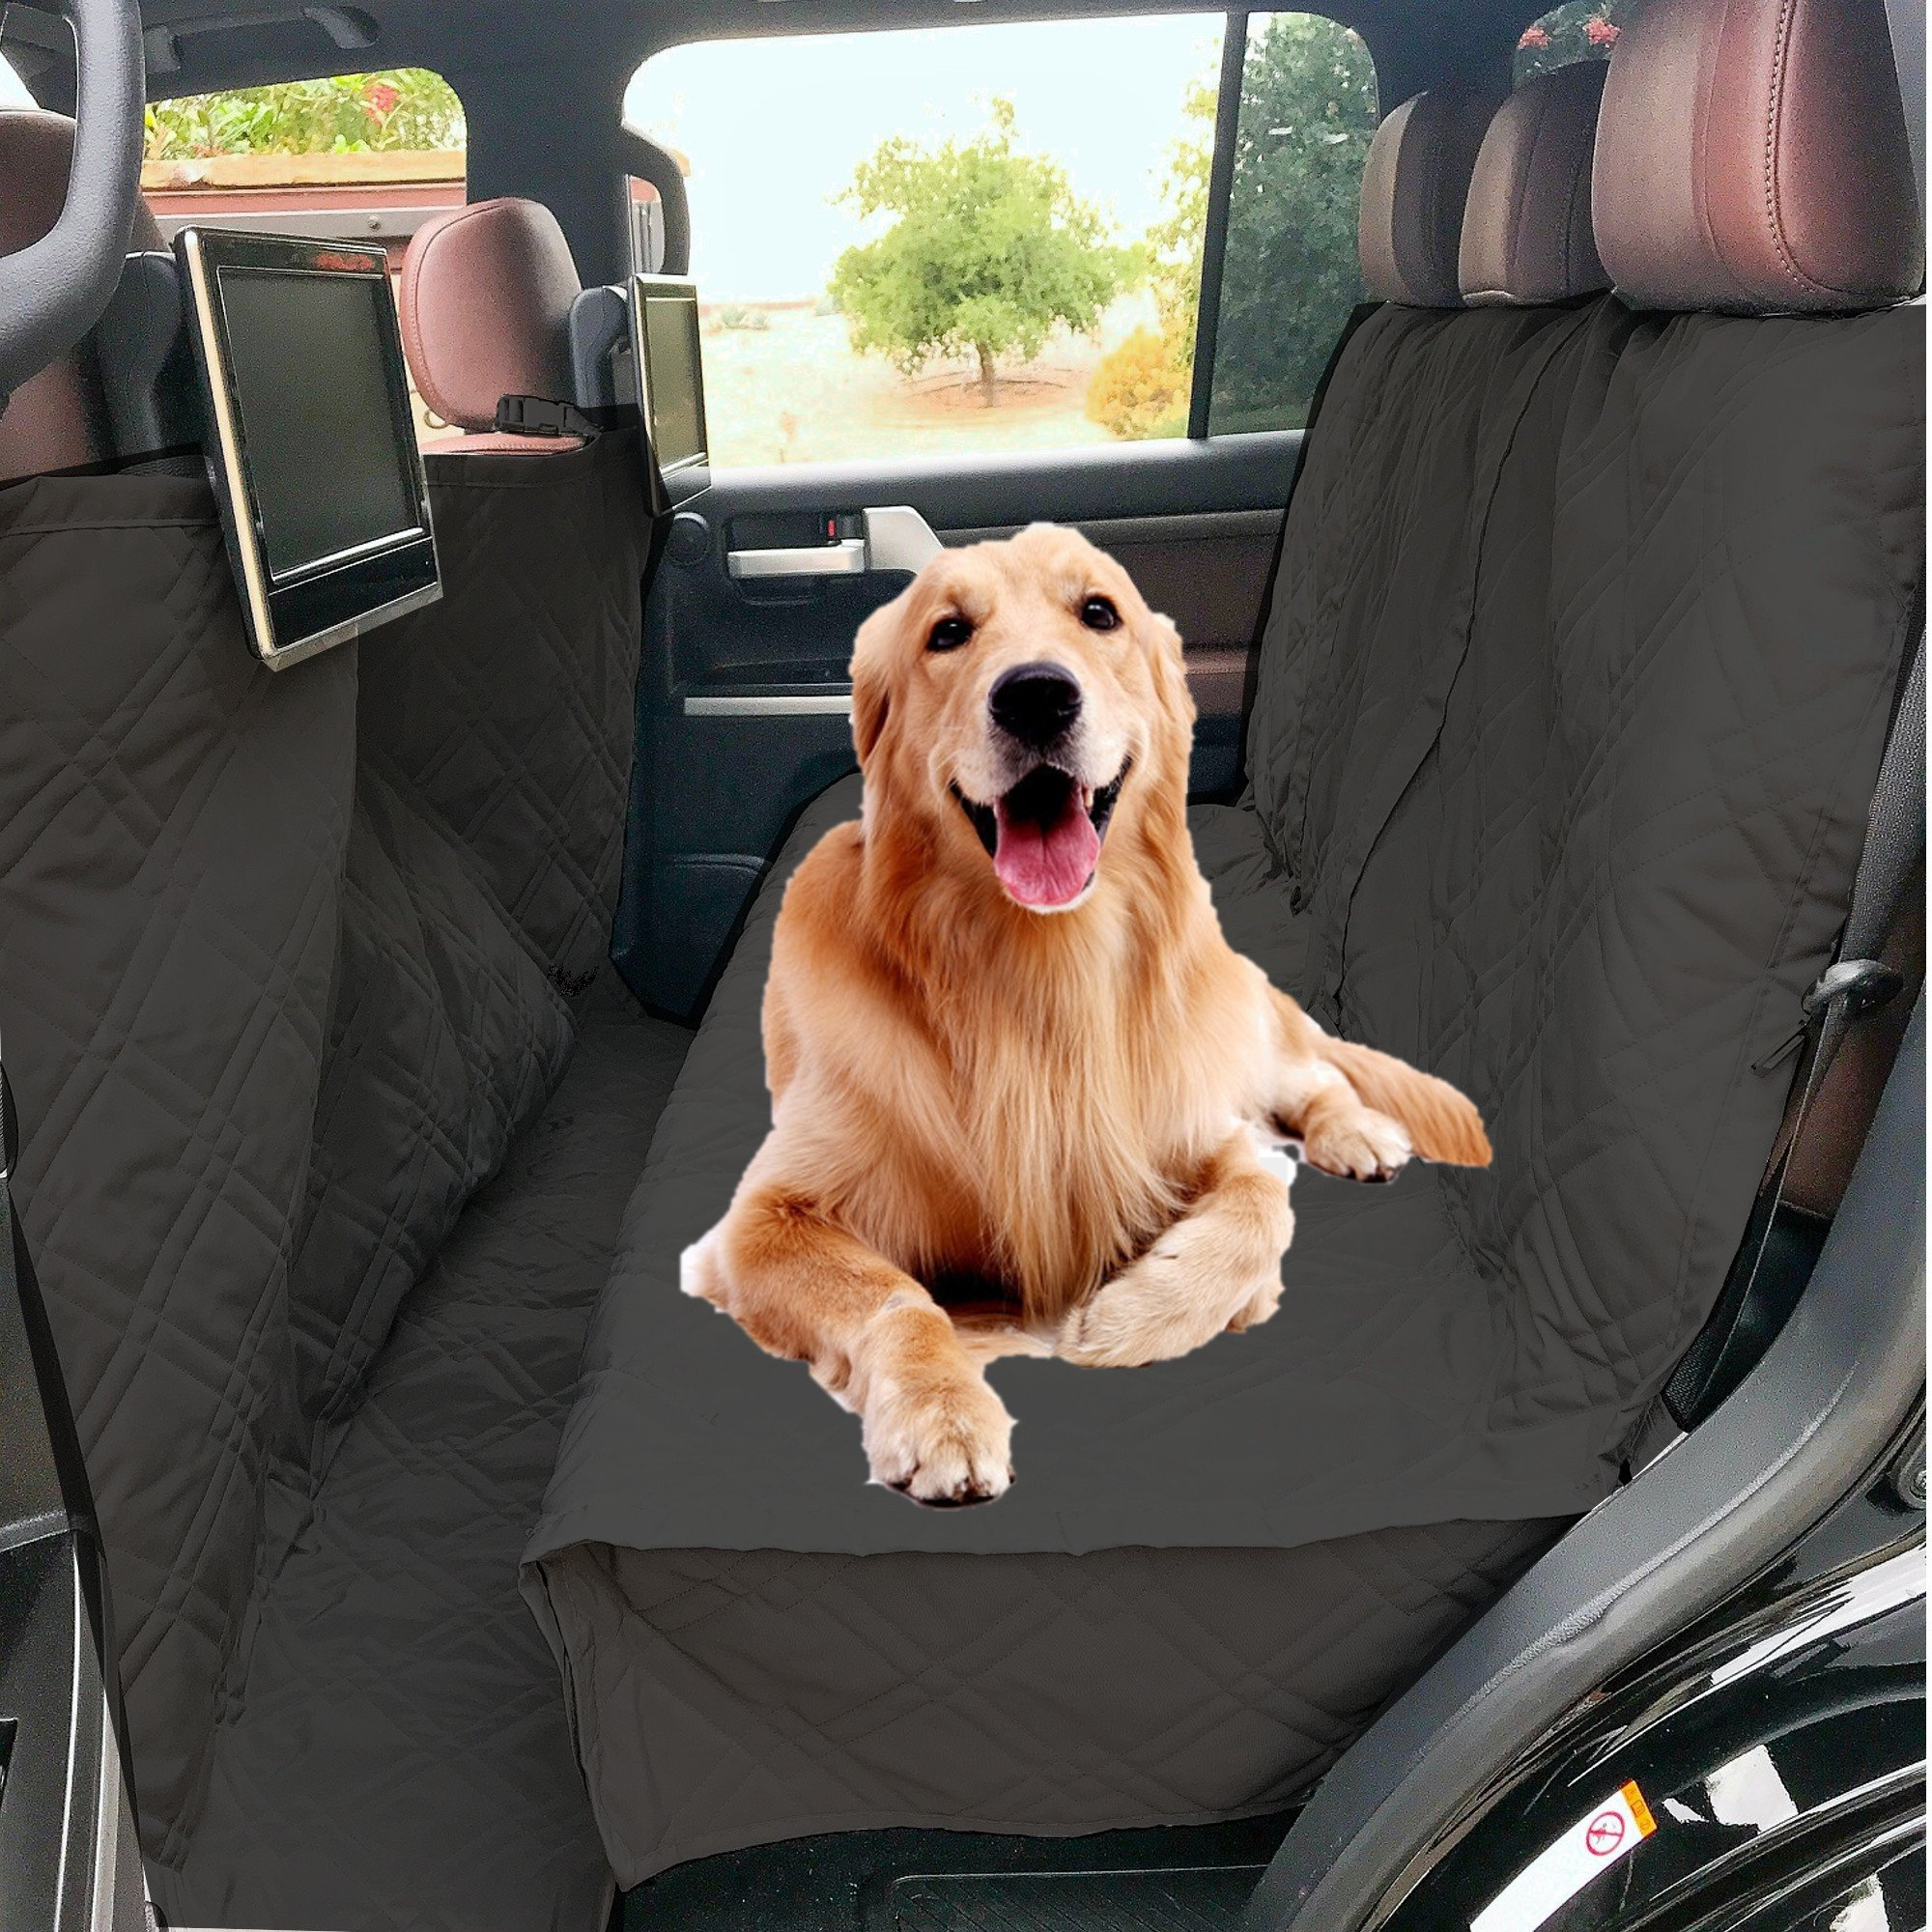 Formosa Covers Deluxe Quilted and Padded Dog Car Back Seat Cover with Non-Slip Back Best for Car Truck and SUV - Travel With Your Pet Mess Free - Universal Fit 56''x94'', Black